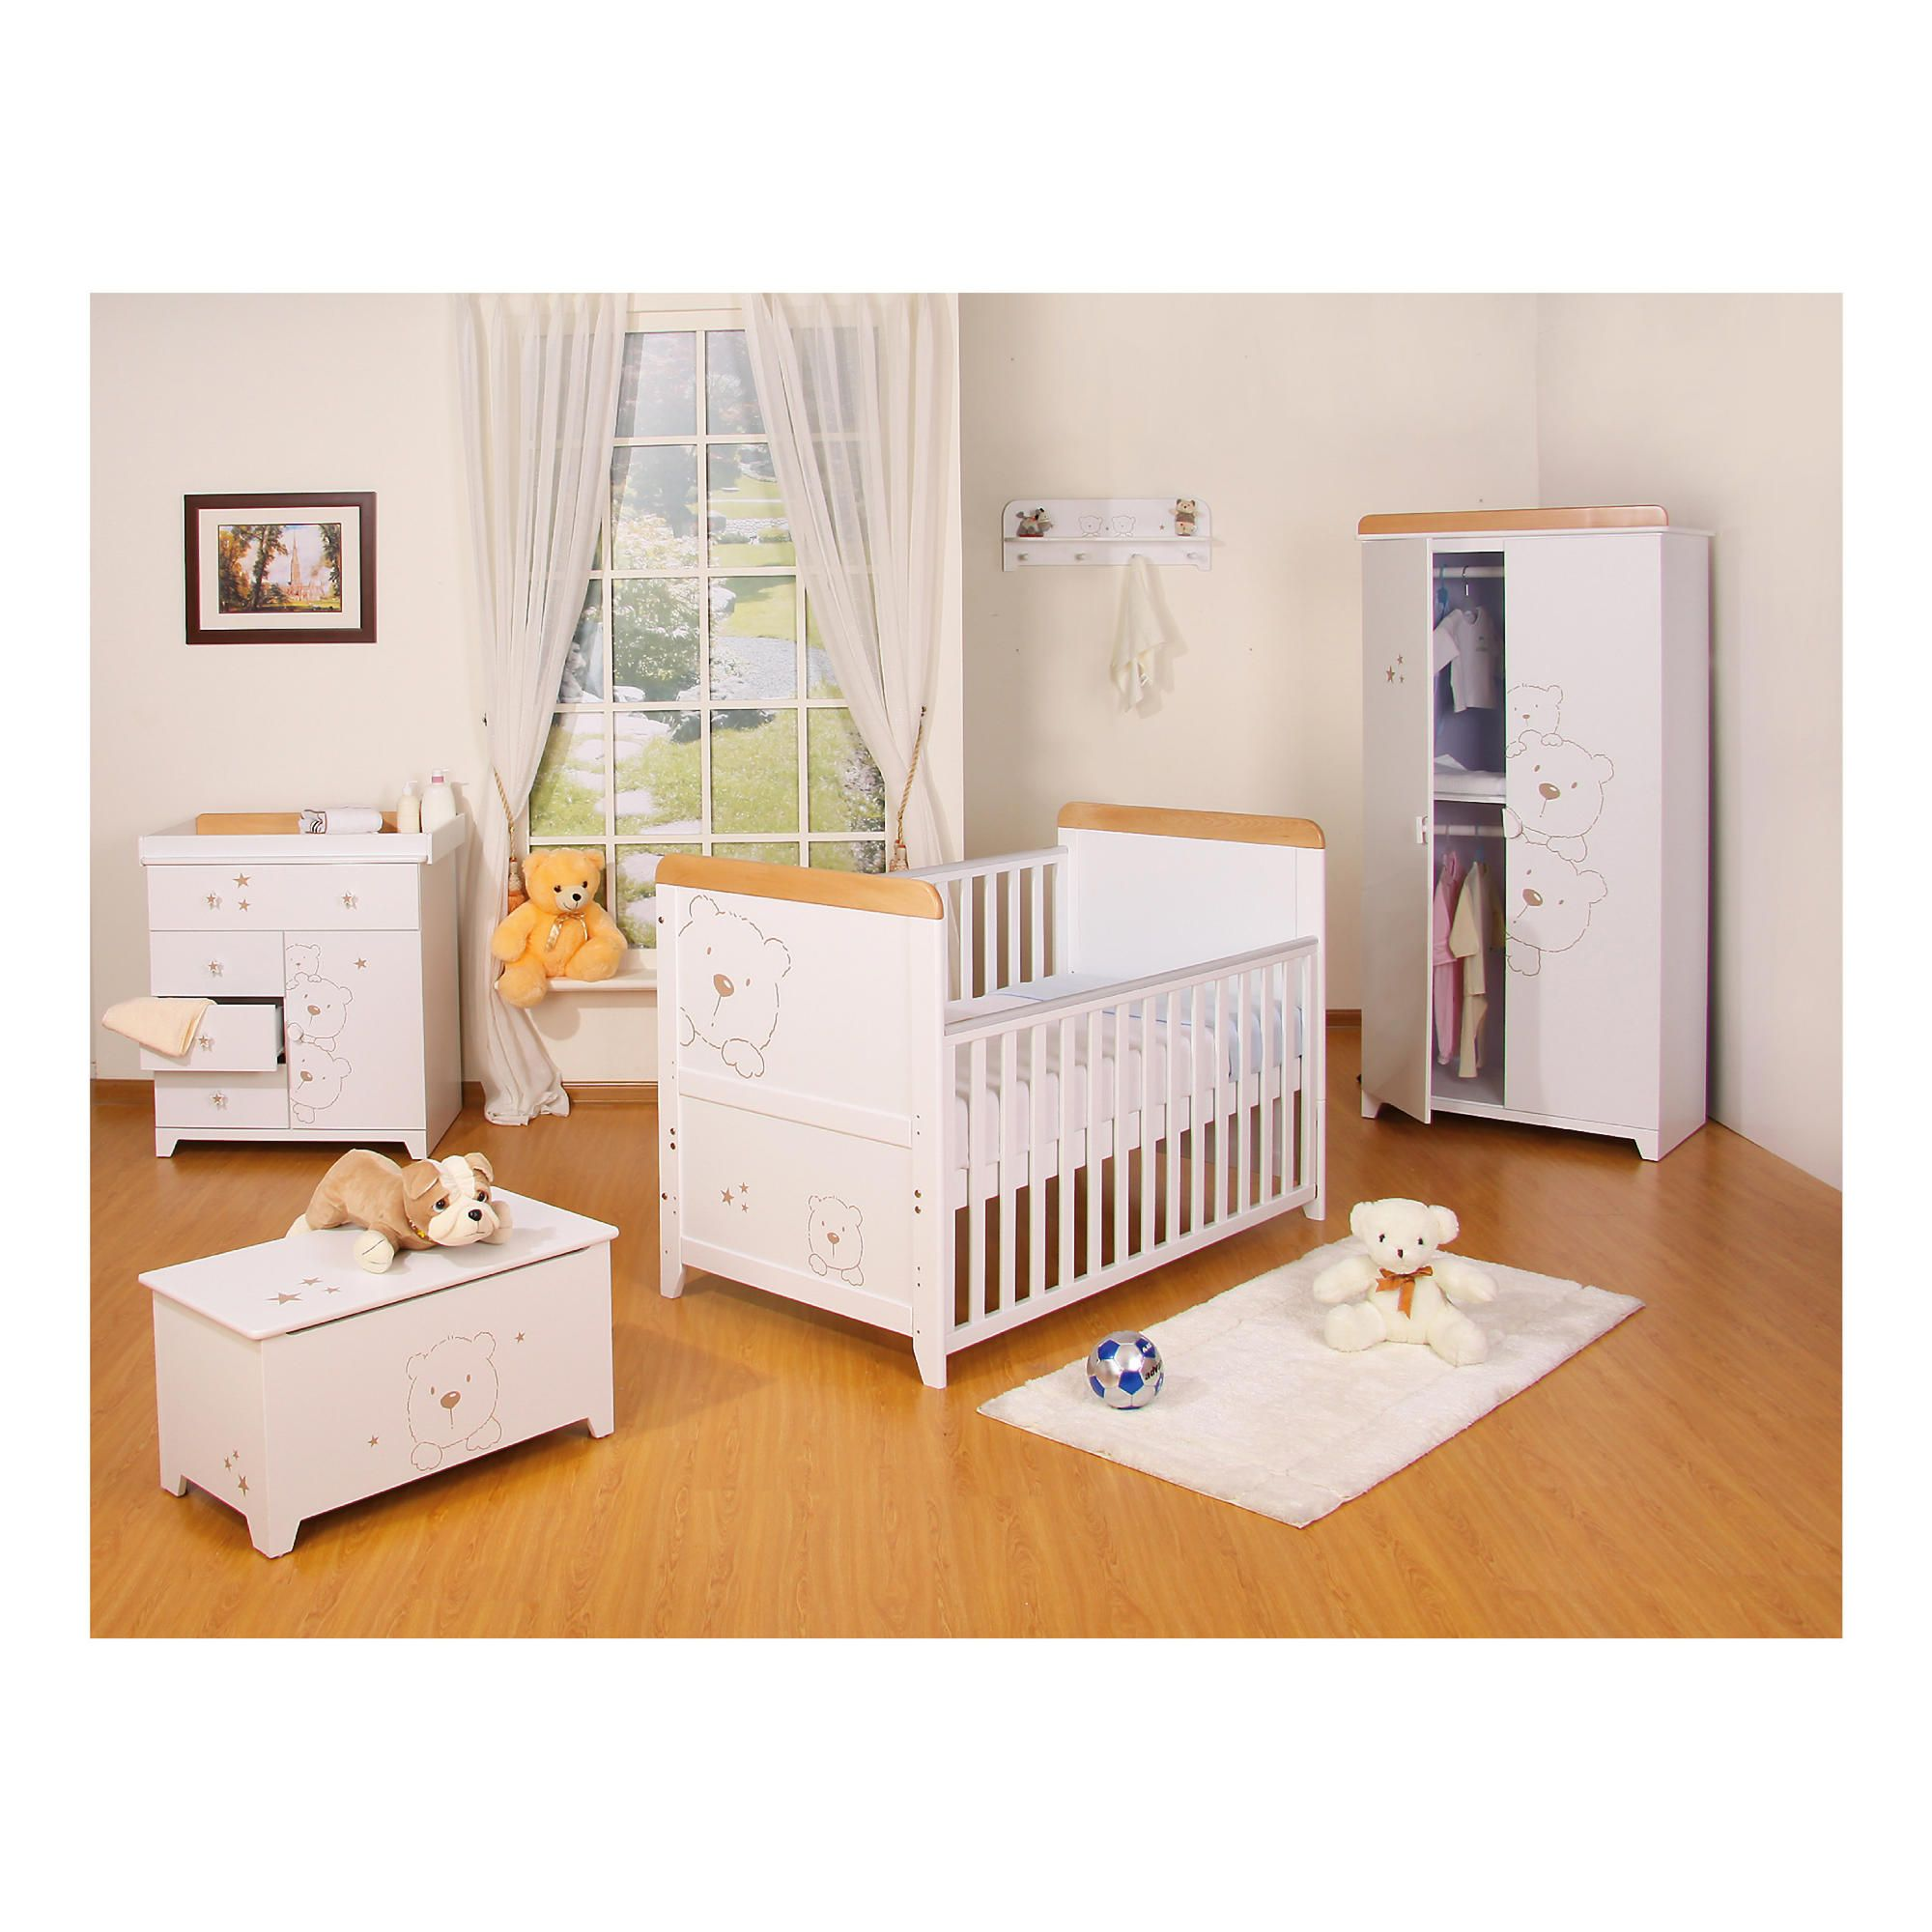 Tutti Bambini Bears 5 Piece Room Set, White With Free Home Assembly at Tesco Direct